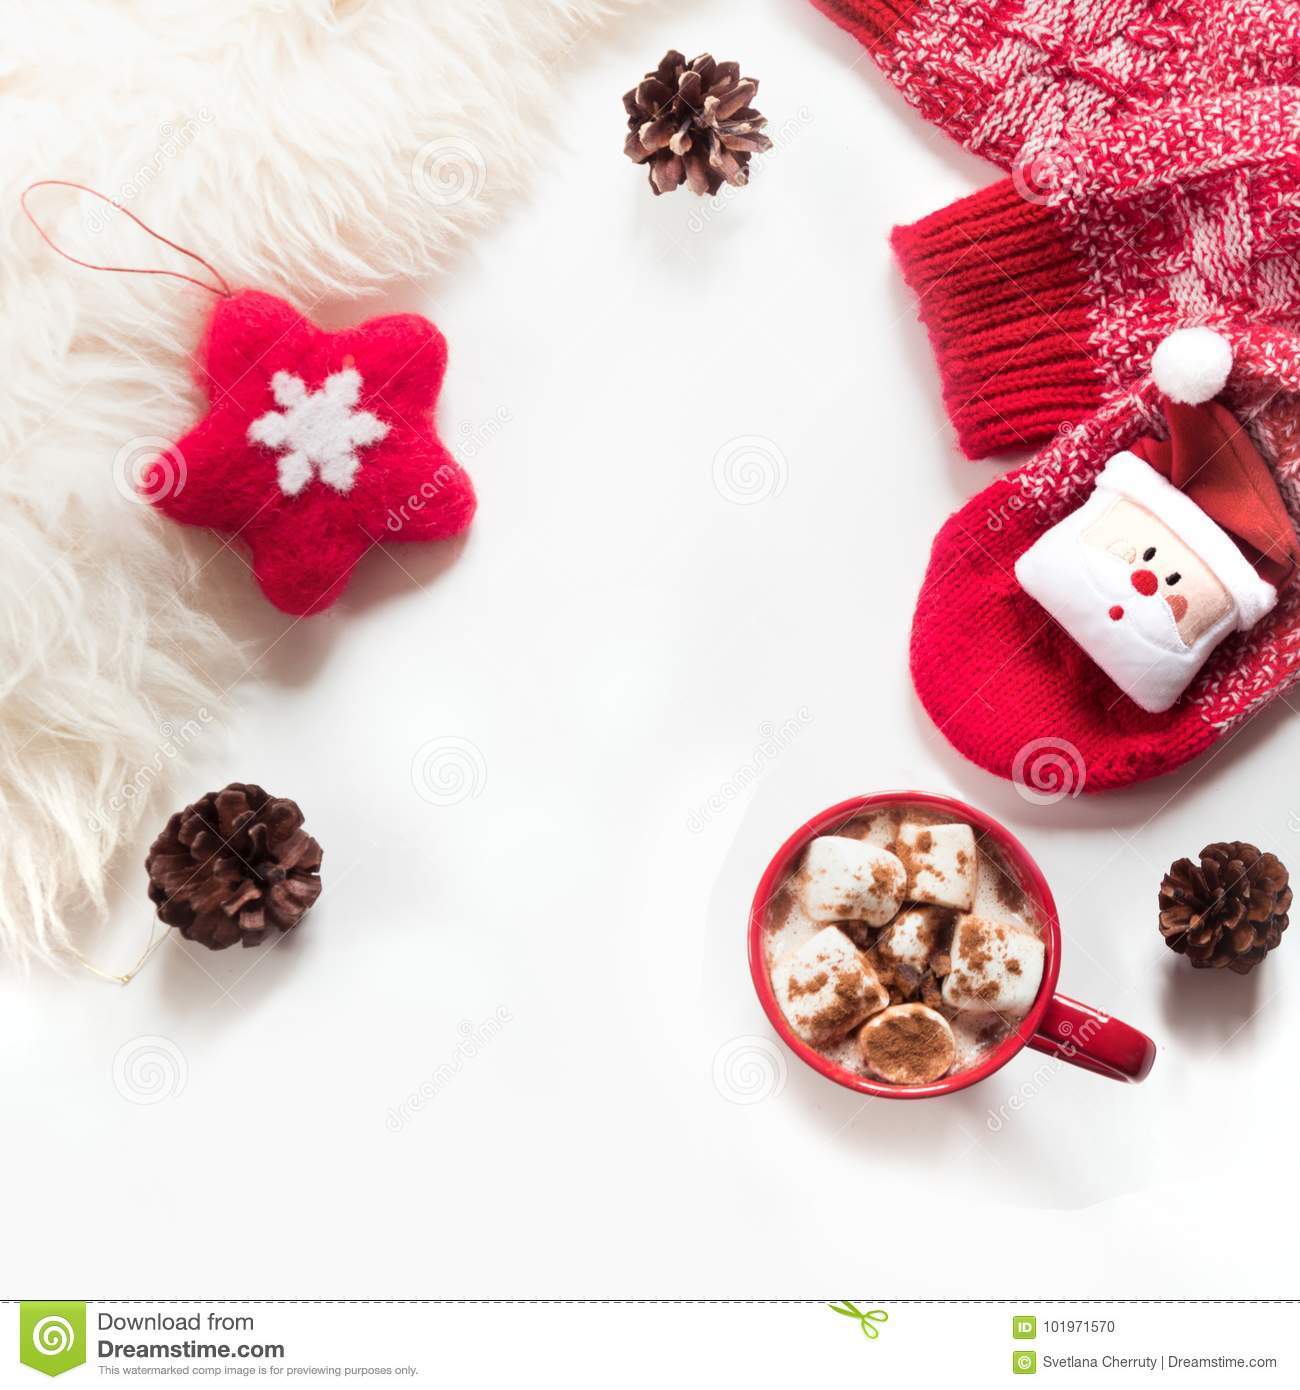 Christmas holiday hot chocolate with marshmallow, cone, white fur, red felt star, knitted socks on white background.